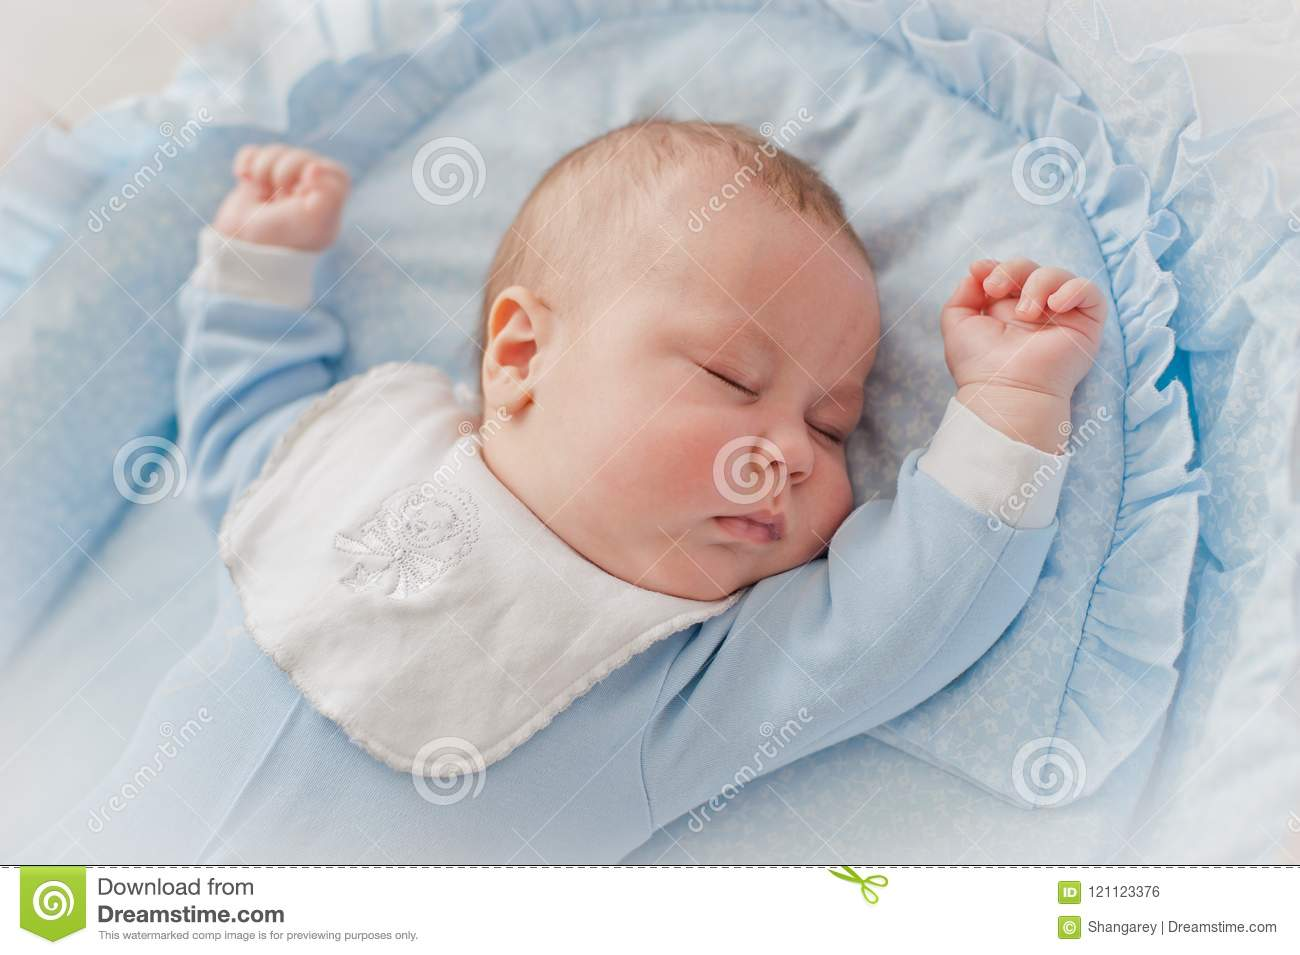 Baby`s restful sleep. Newborn baby in a wooden crib. The baby sleeps in the bedside cradle.